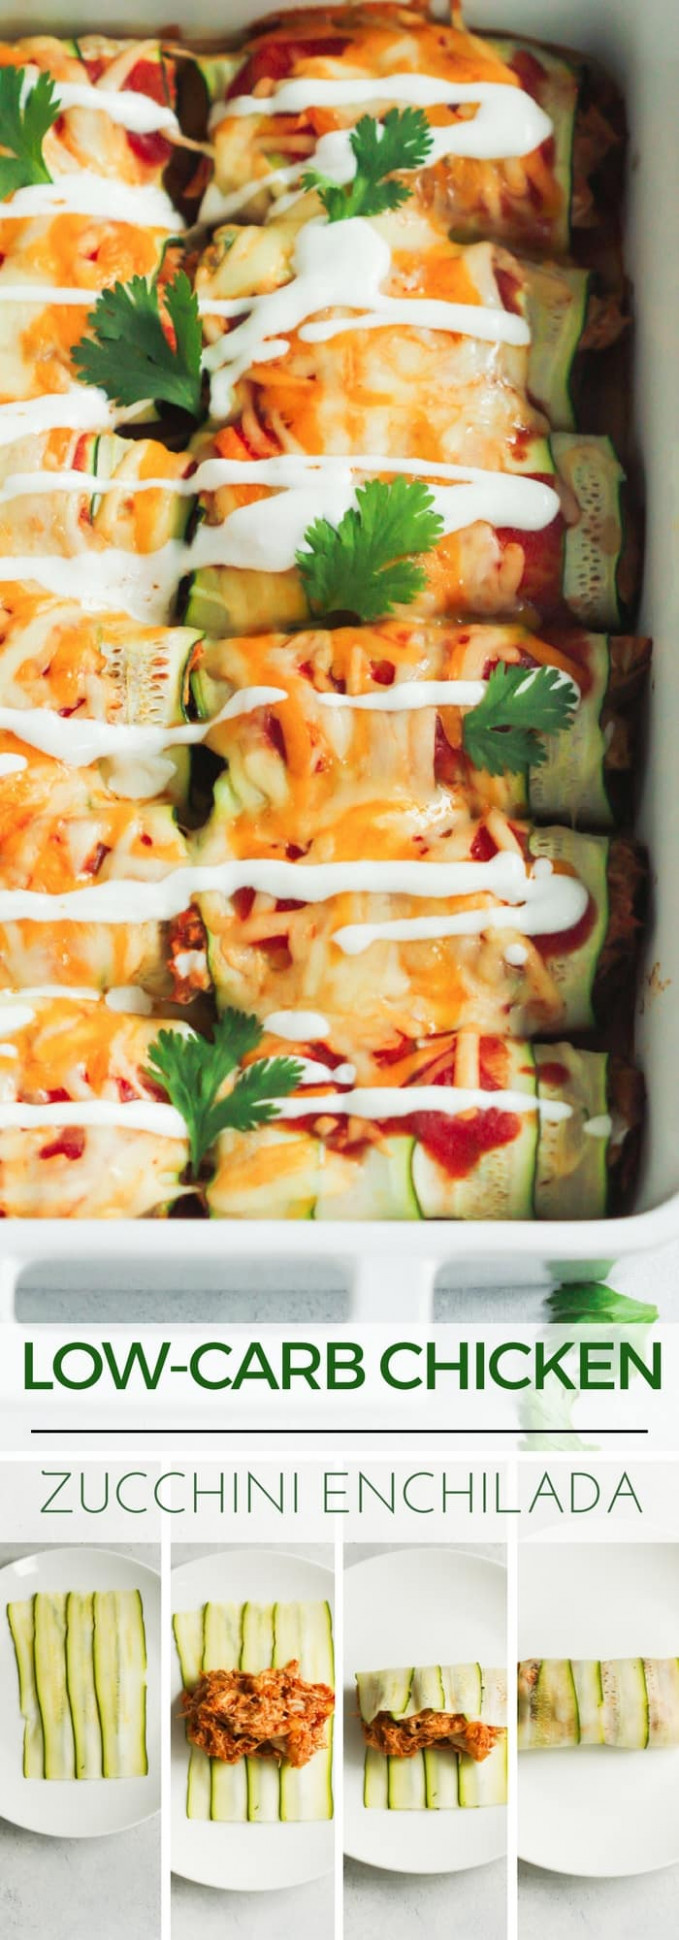 Low-carb Chicken Zucchini Enchilada - chicken zucchini recipes low carb